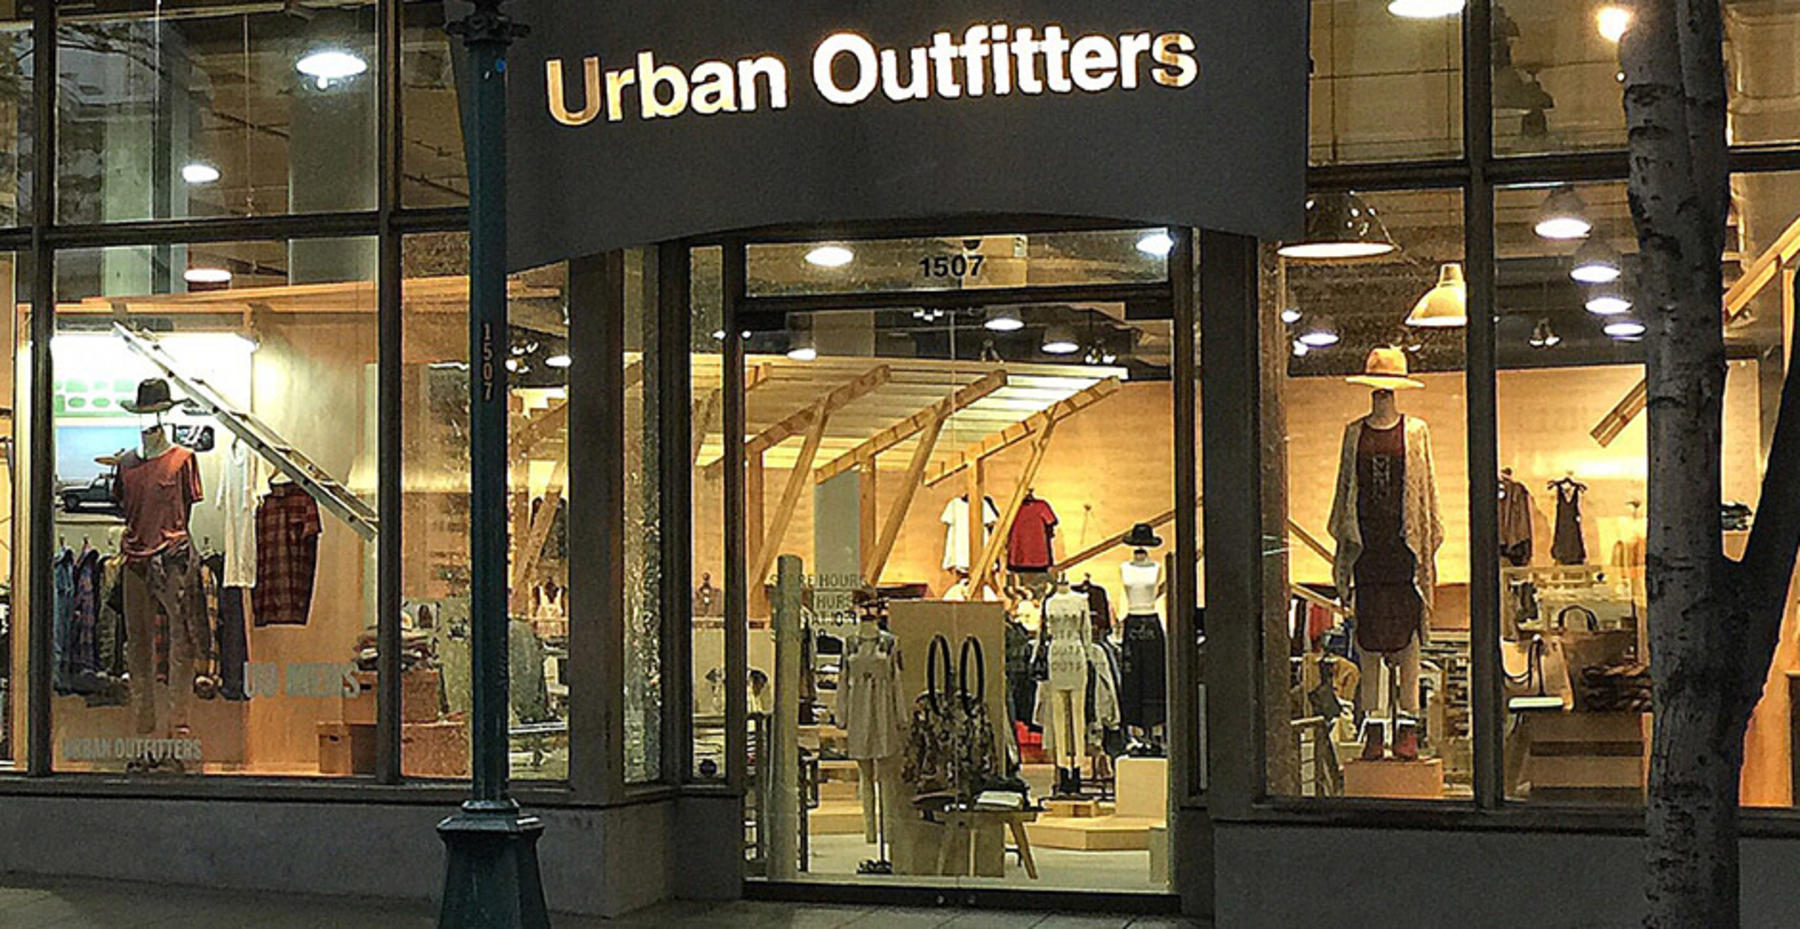 urban outfitters Urban outfitters' spaces bring together retail, dining, events, pop-ups and artist collaborations to create gathering places curated specifically for local communities.